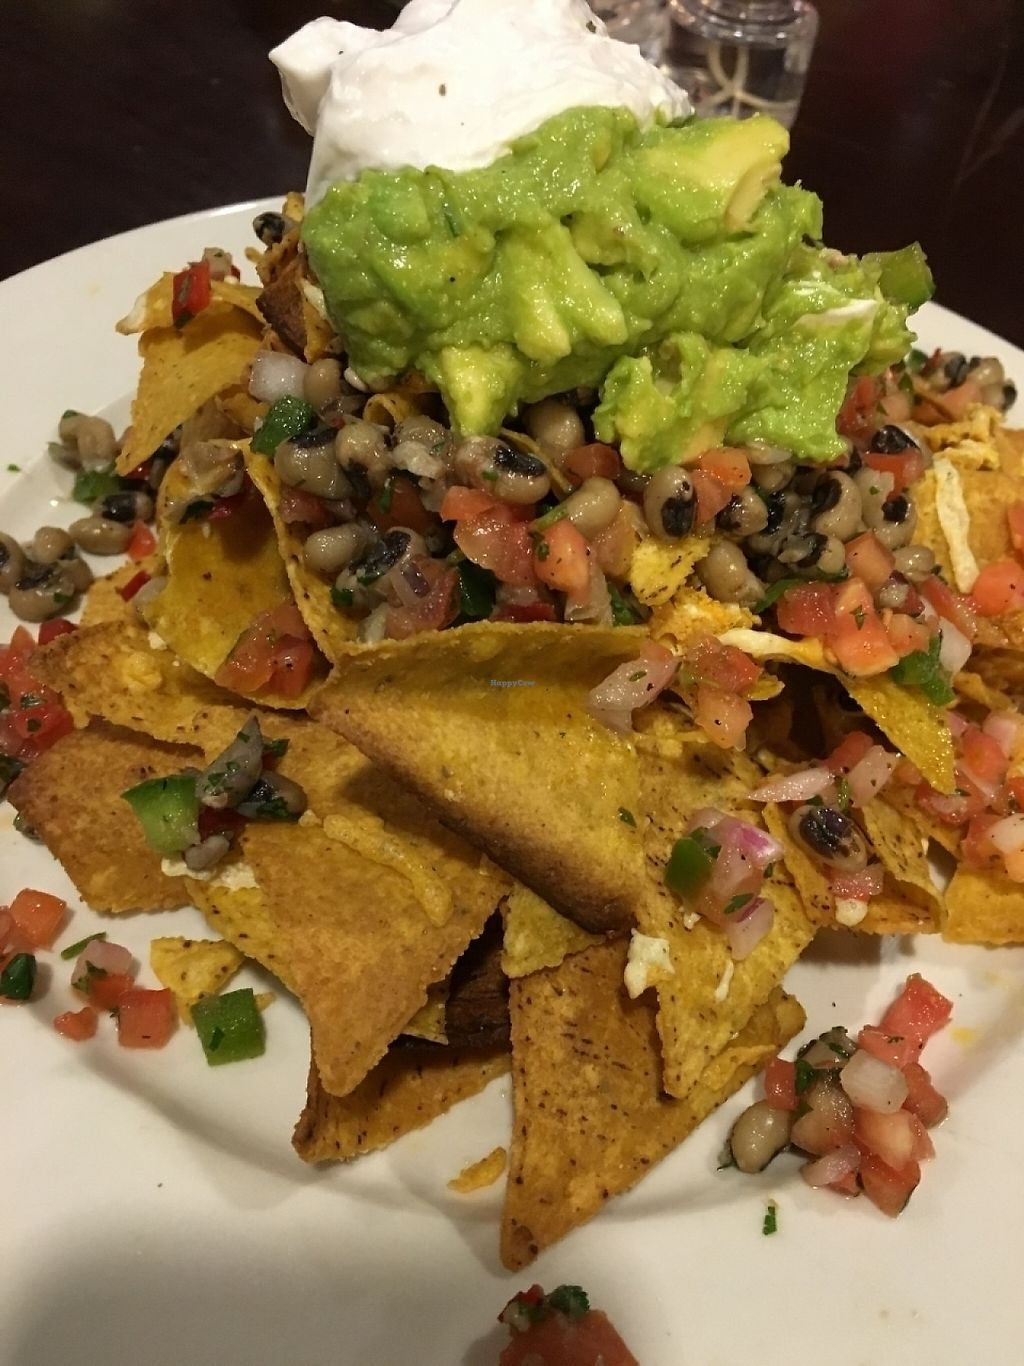 """Photo of Busboys and Poets - Carroll St  by <a href=""""/members/profile/cookiem"""">cookiem</a> <br/>Vegan nachos <br/> June 4, 2016  - <a href='/contact/abuse/image/56092/202140'>Report</a>"""